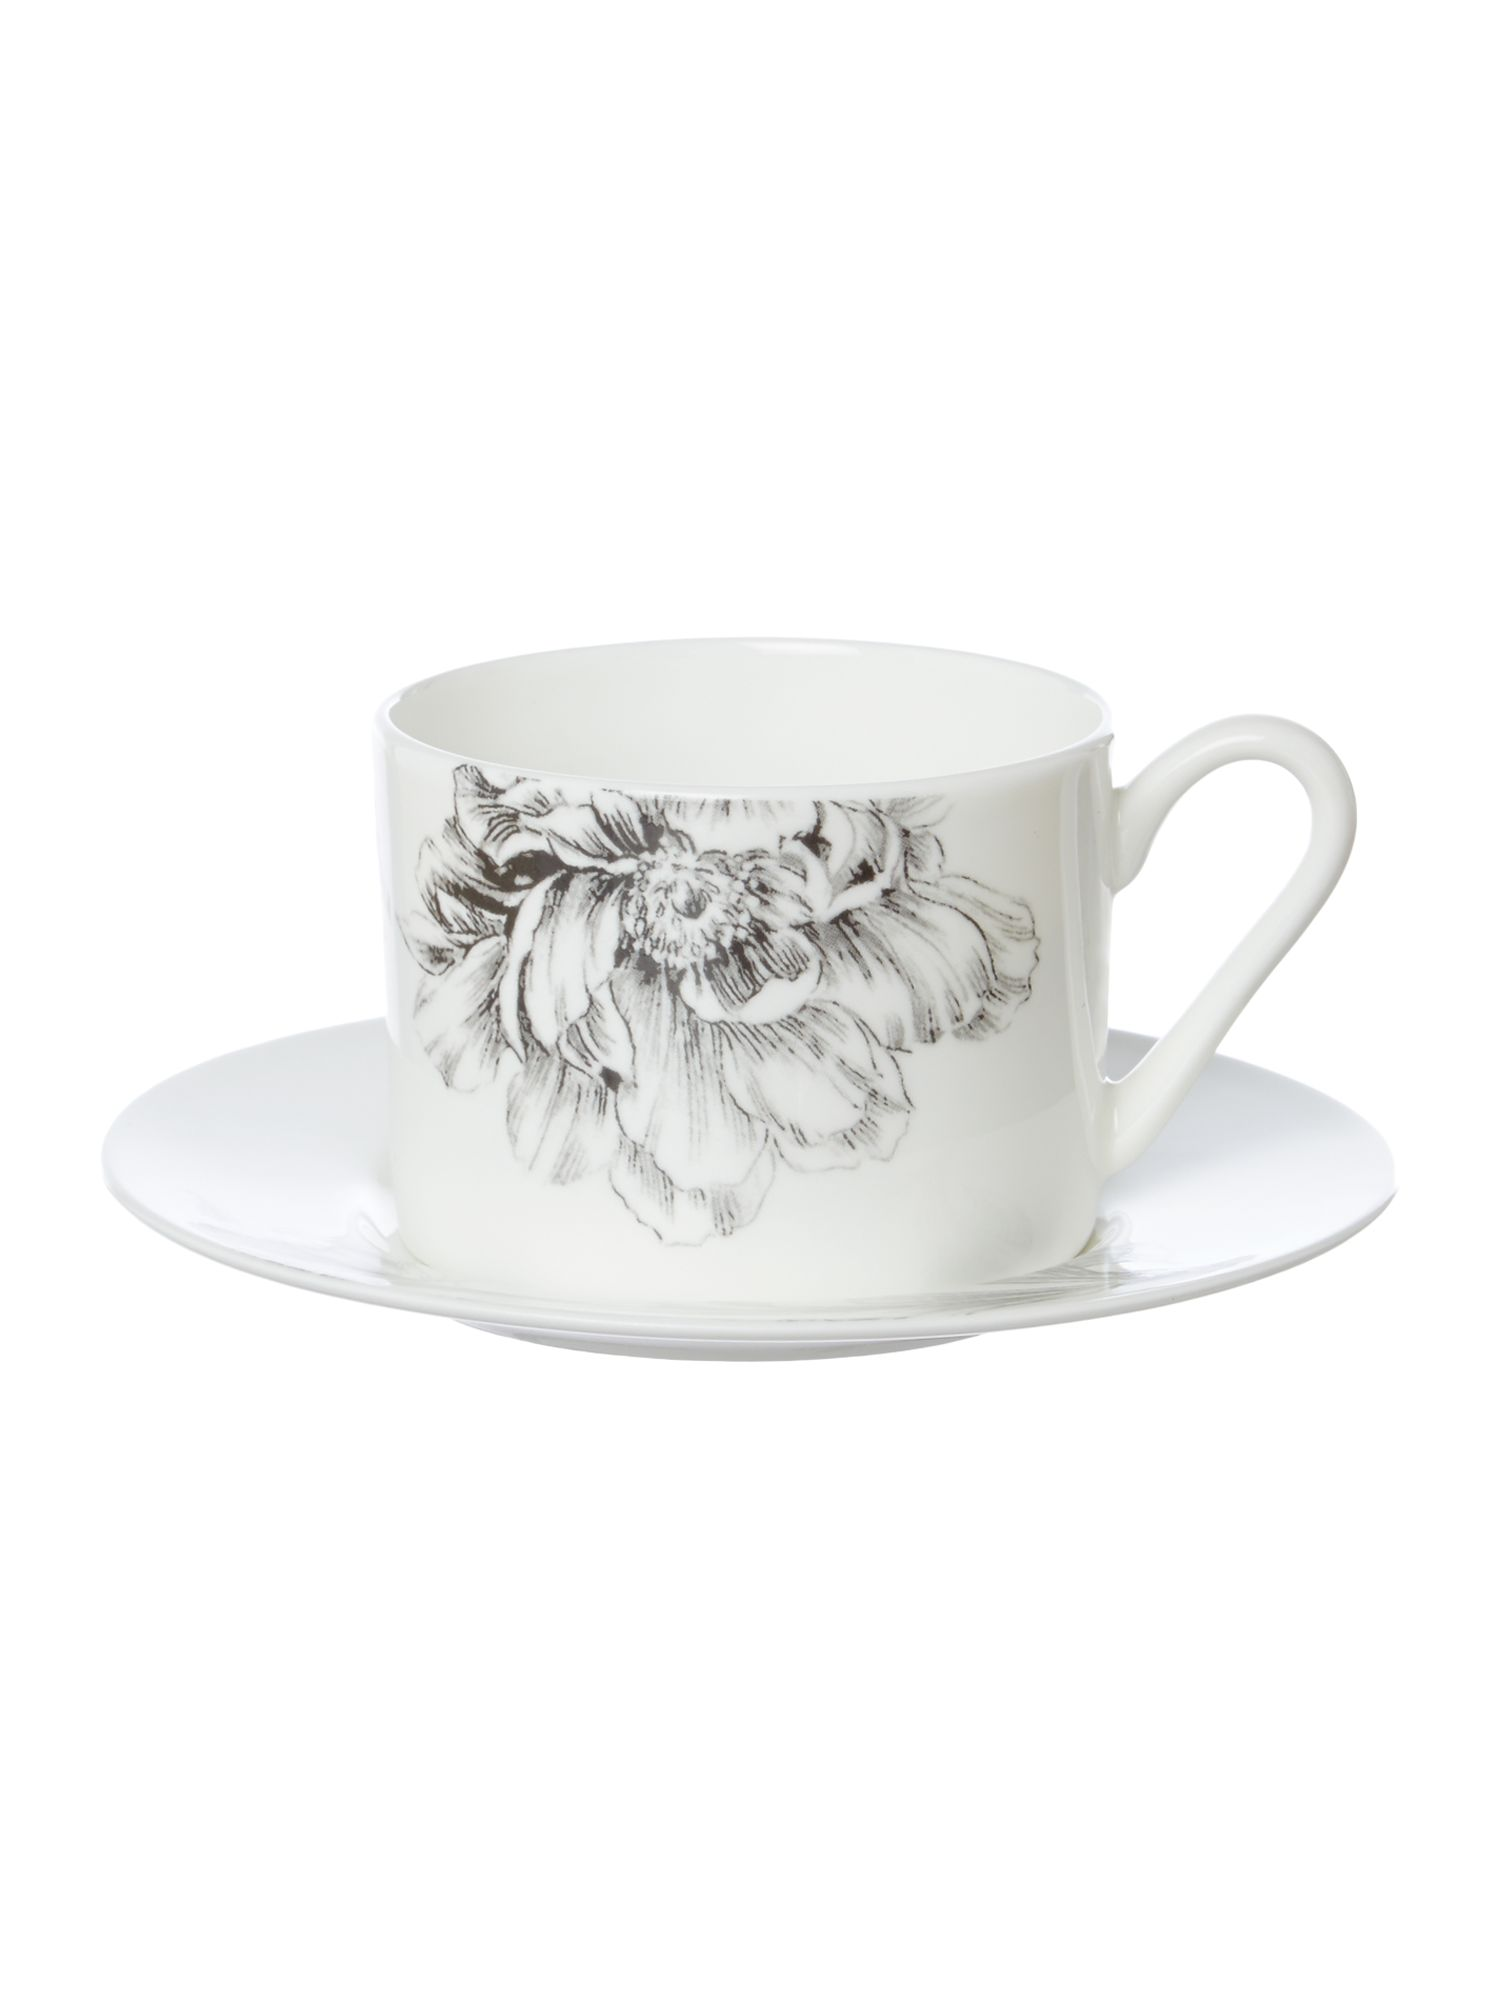 Winterbloom cup and saucer